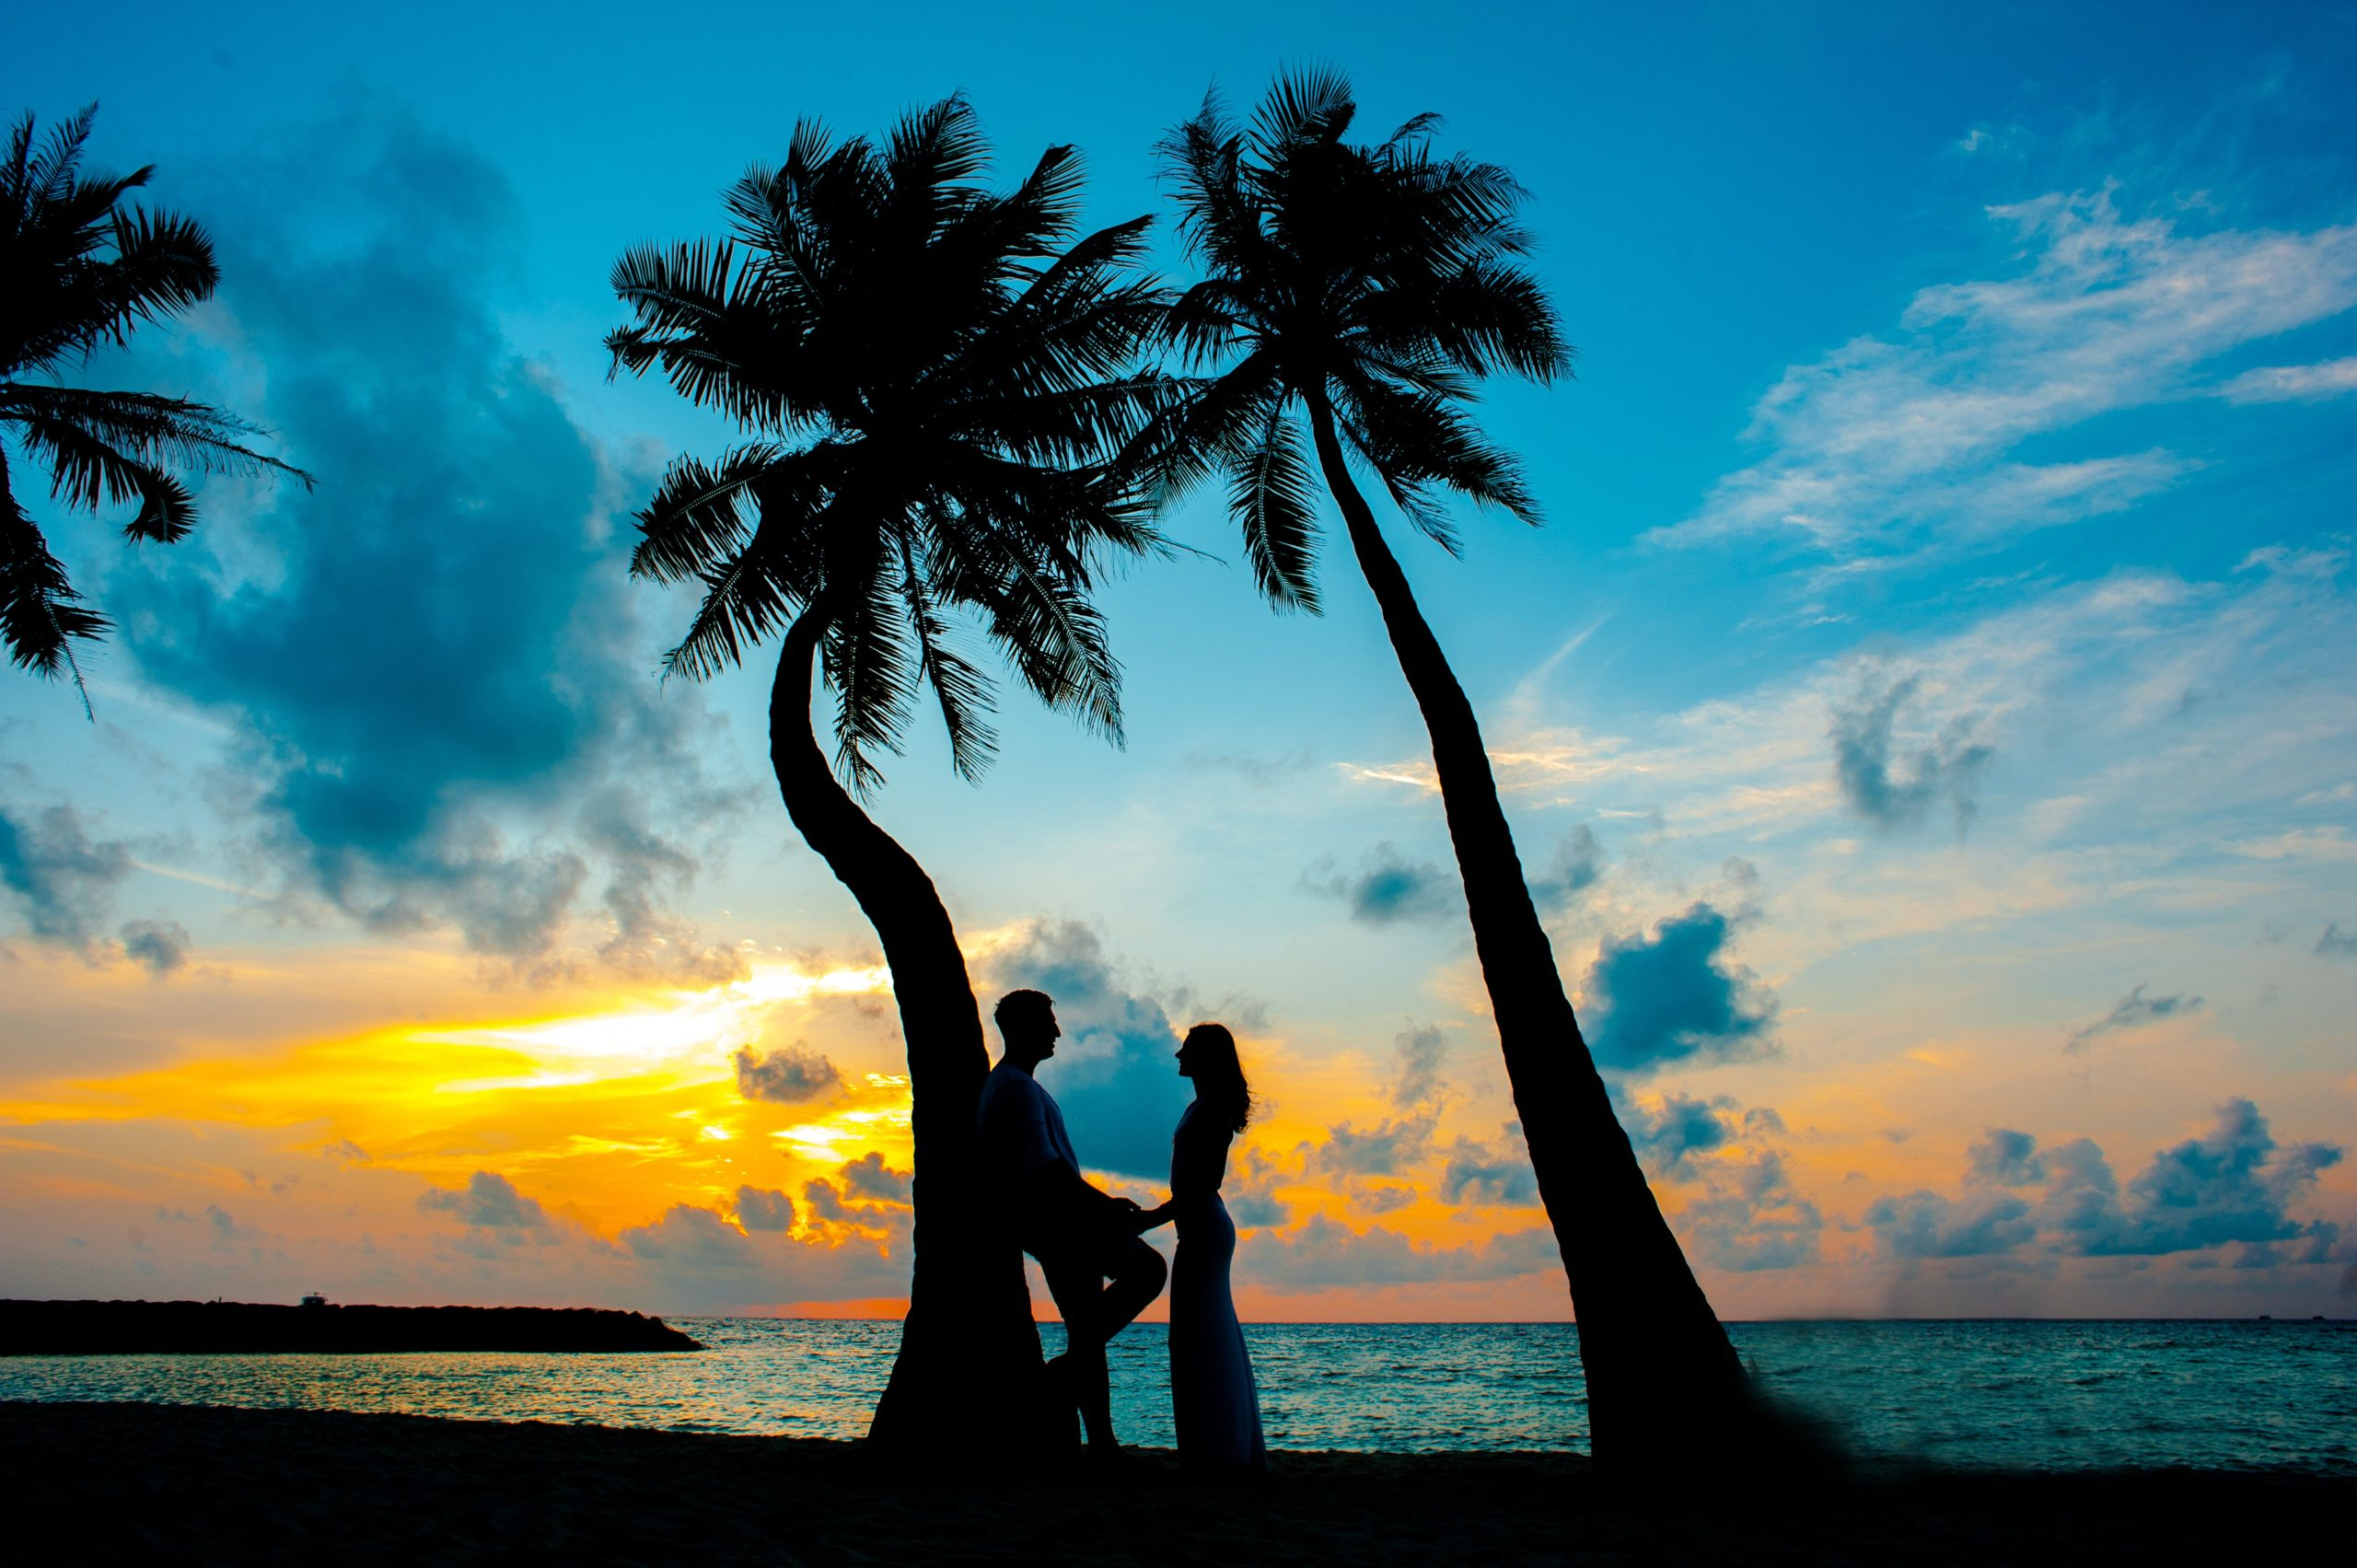 silhouette-photo-of-male-and-female-under-palm-trees-1024981